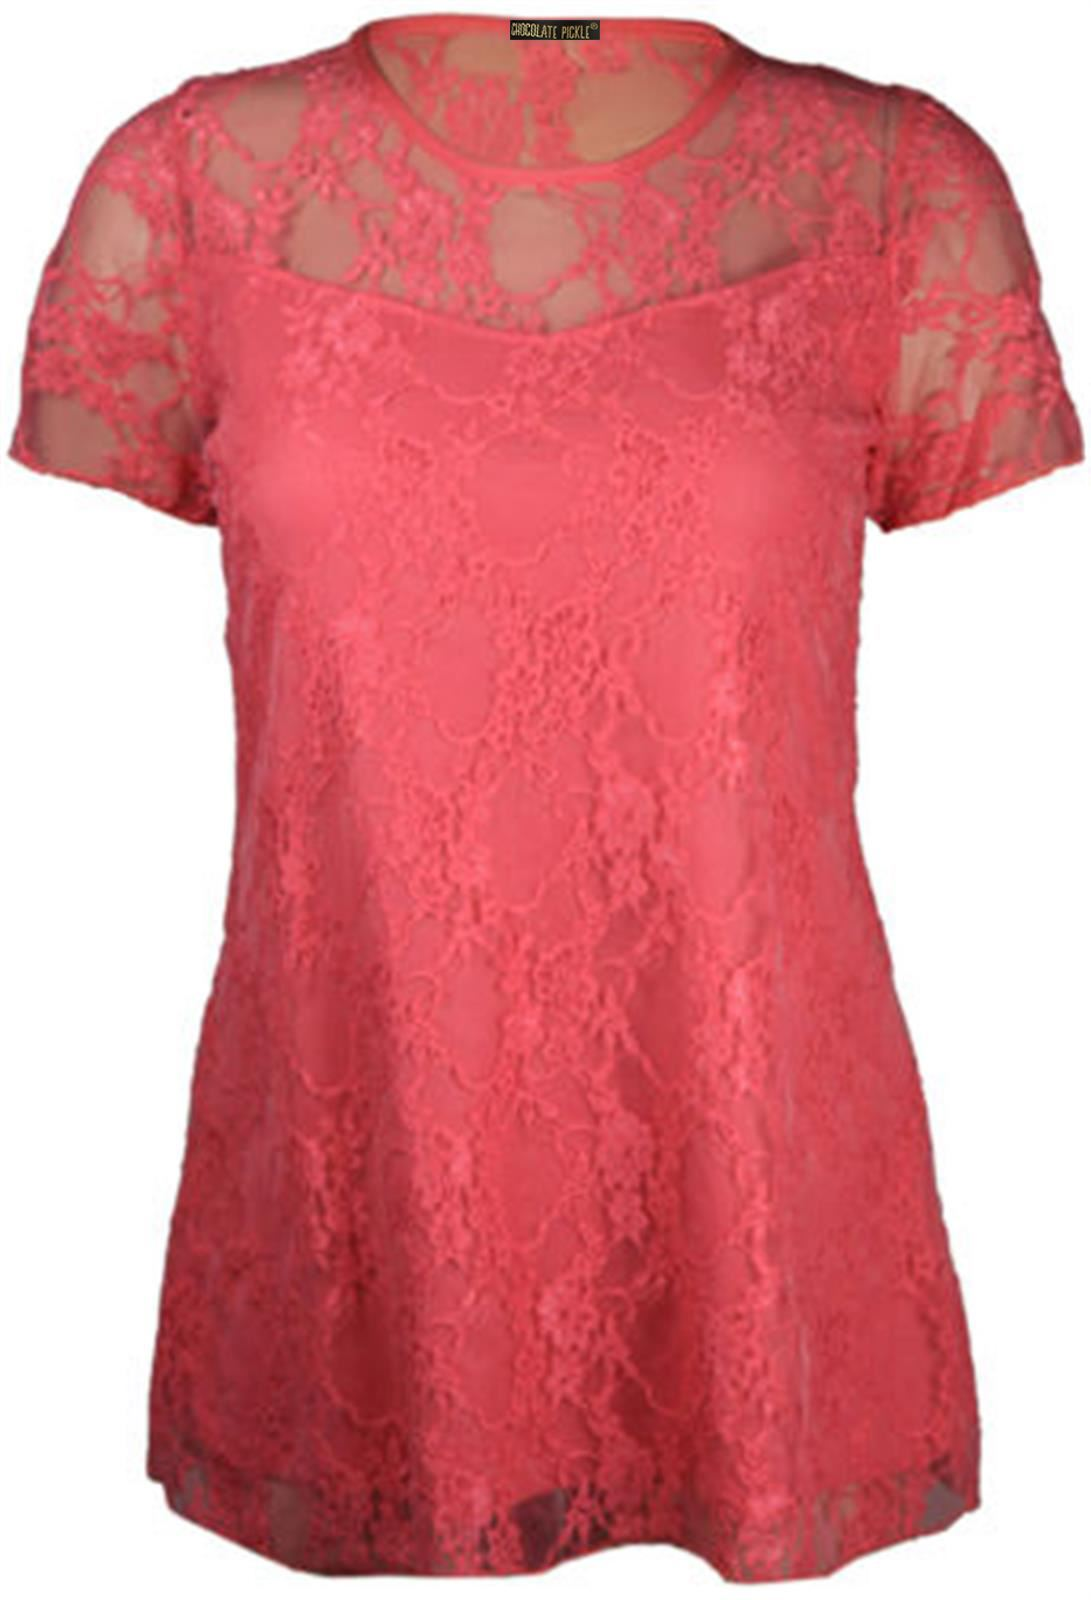 New-Women-s-Plus-Size-Short-Sleeve-Floral-Contrast-Lace-Tunic-Tops-14-28